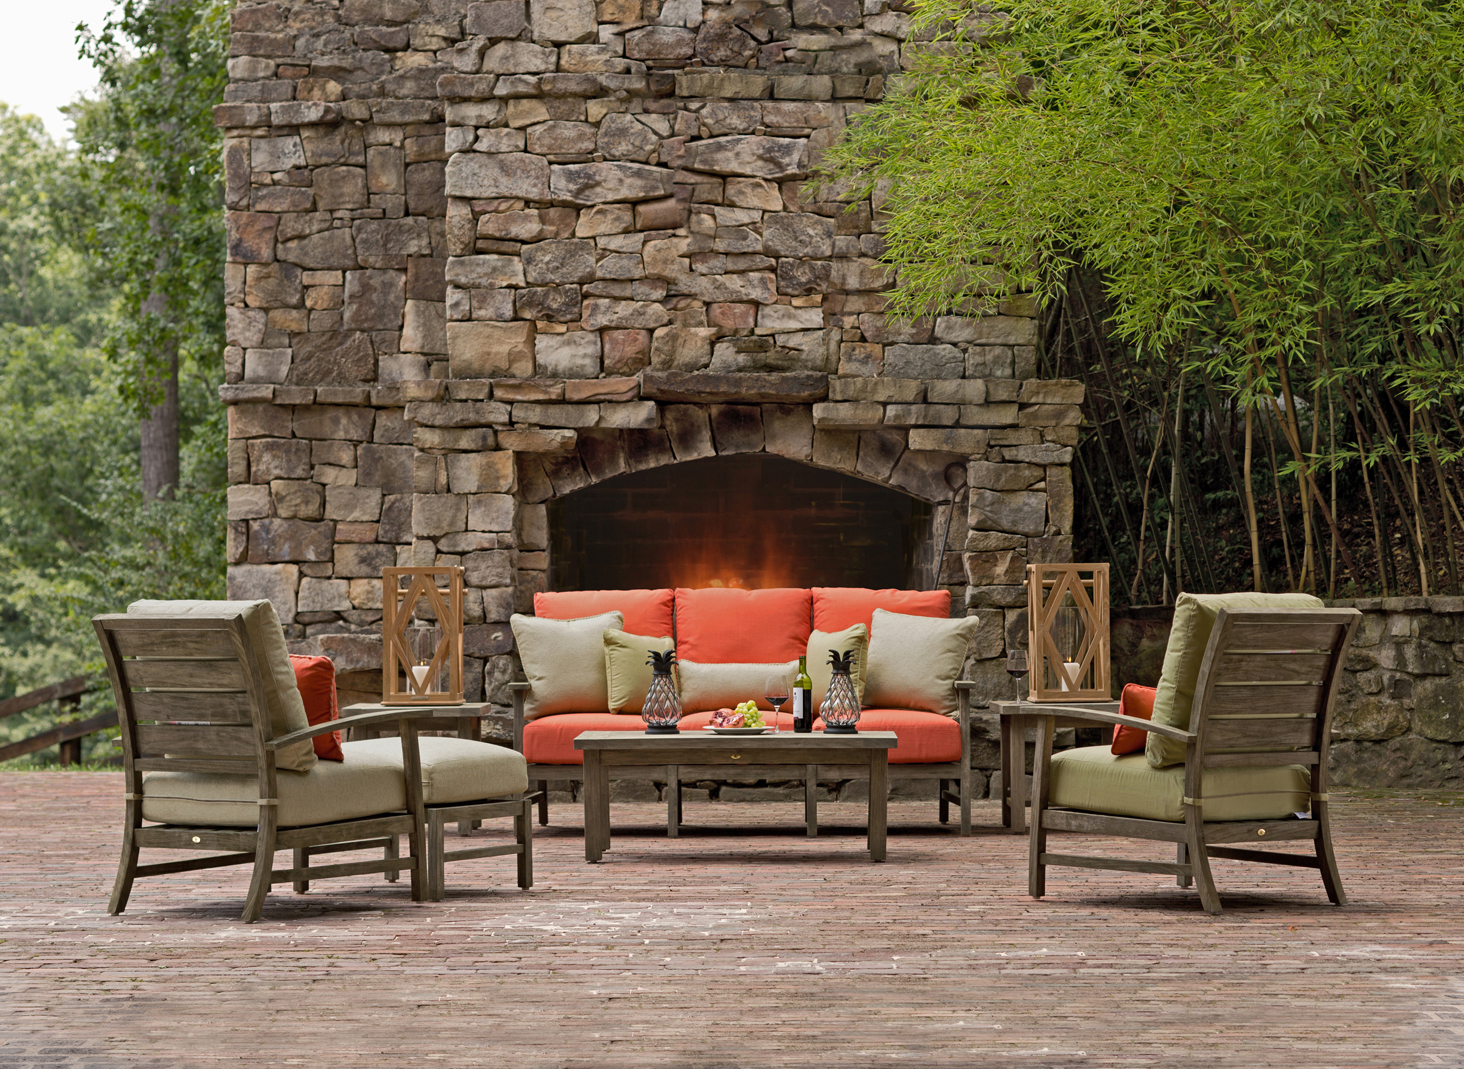 inside out: selecting outdoor fabrics and upholstery for comfort